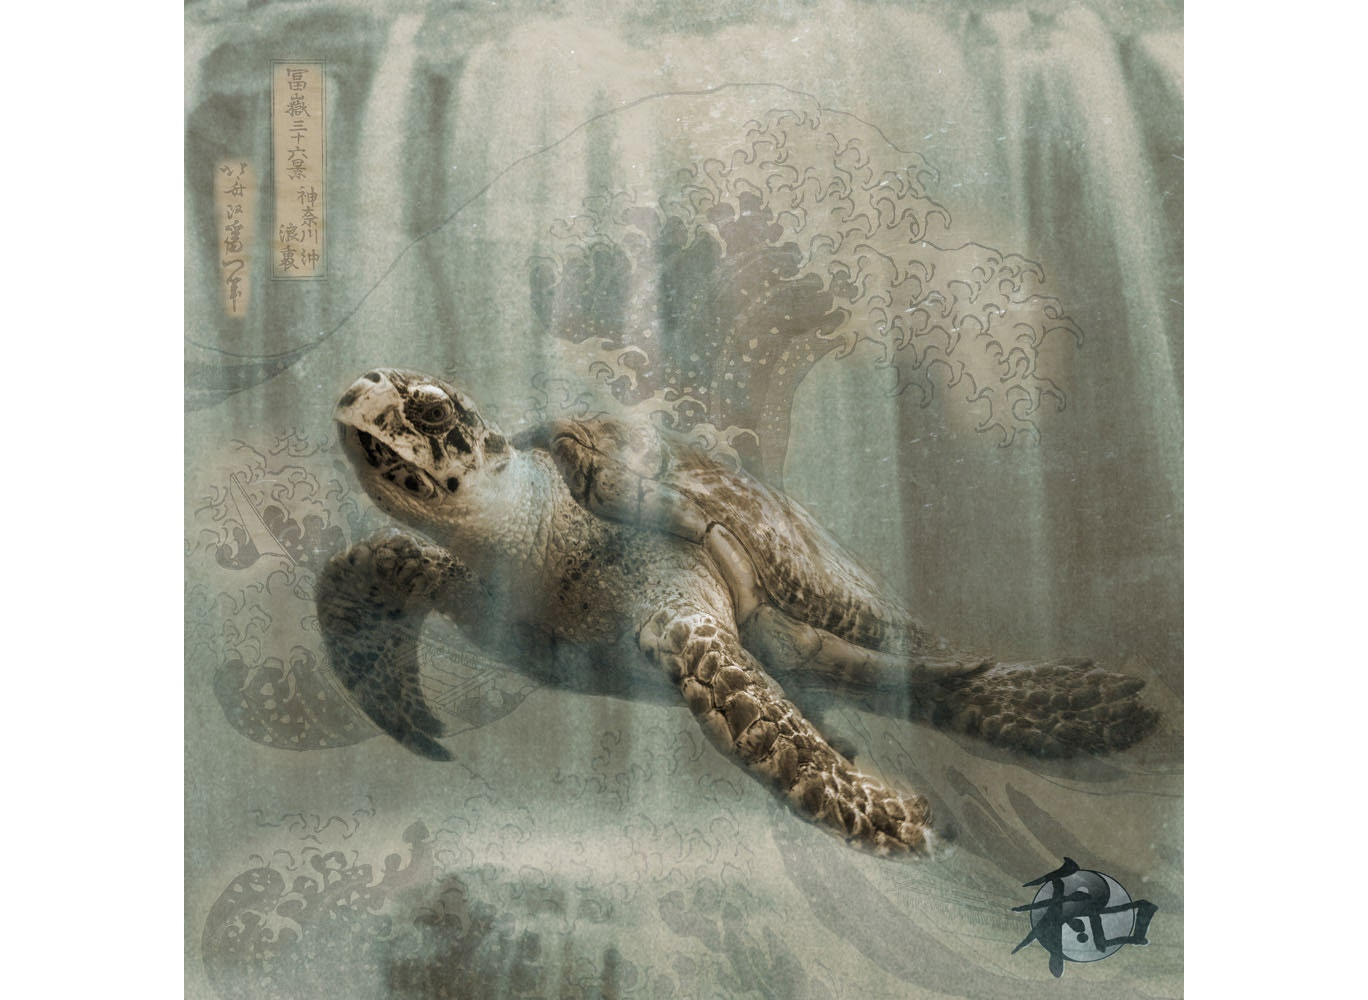 Home Decor Wall Art Sea Turtle Sepia Photo Collage Fine